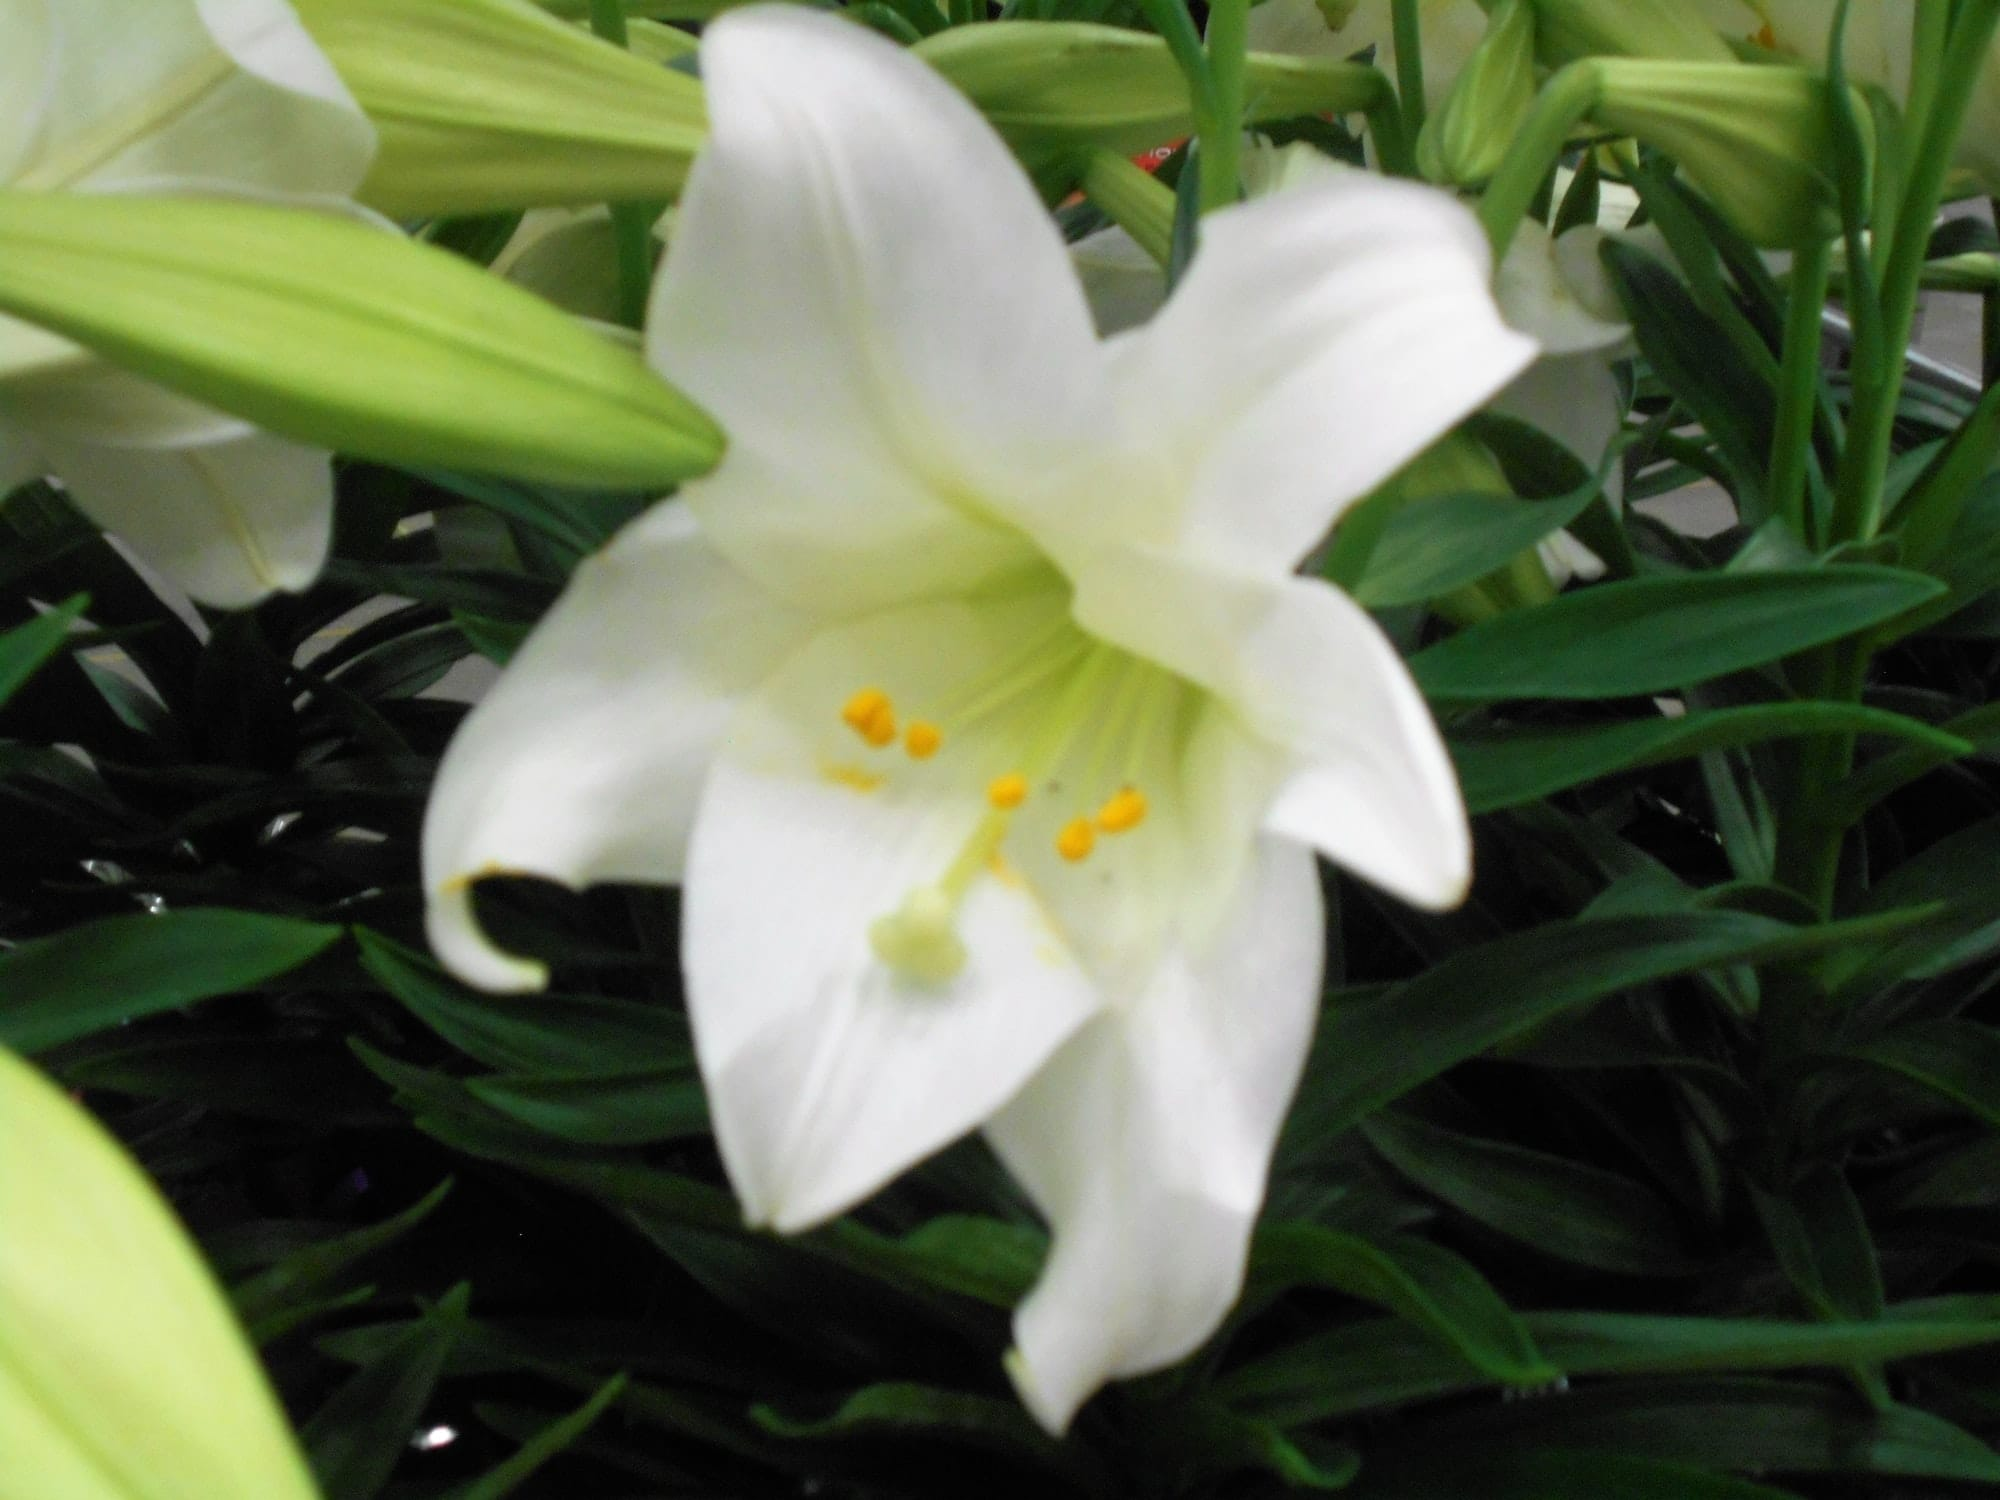 Easter Lily Flower! A beautiful, pure white lily flower to celebrate Easter.